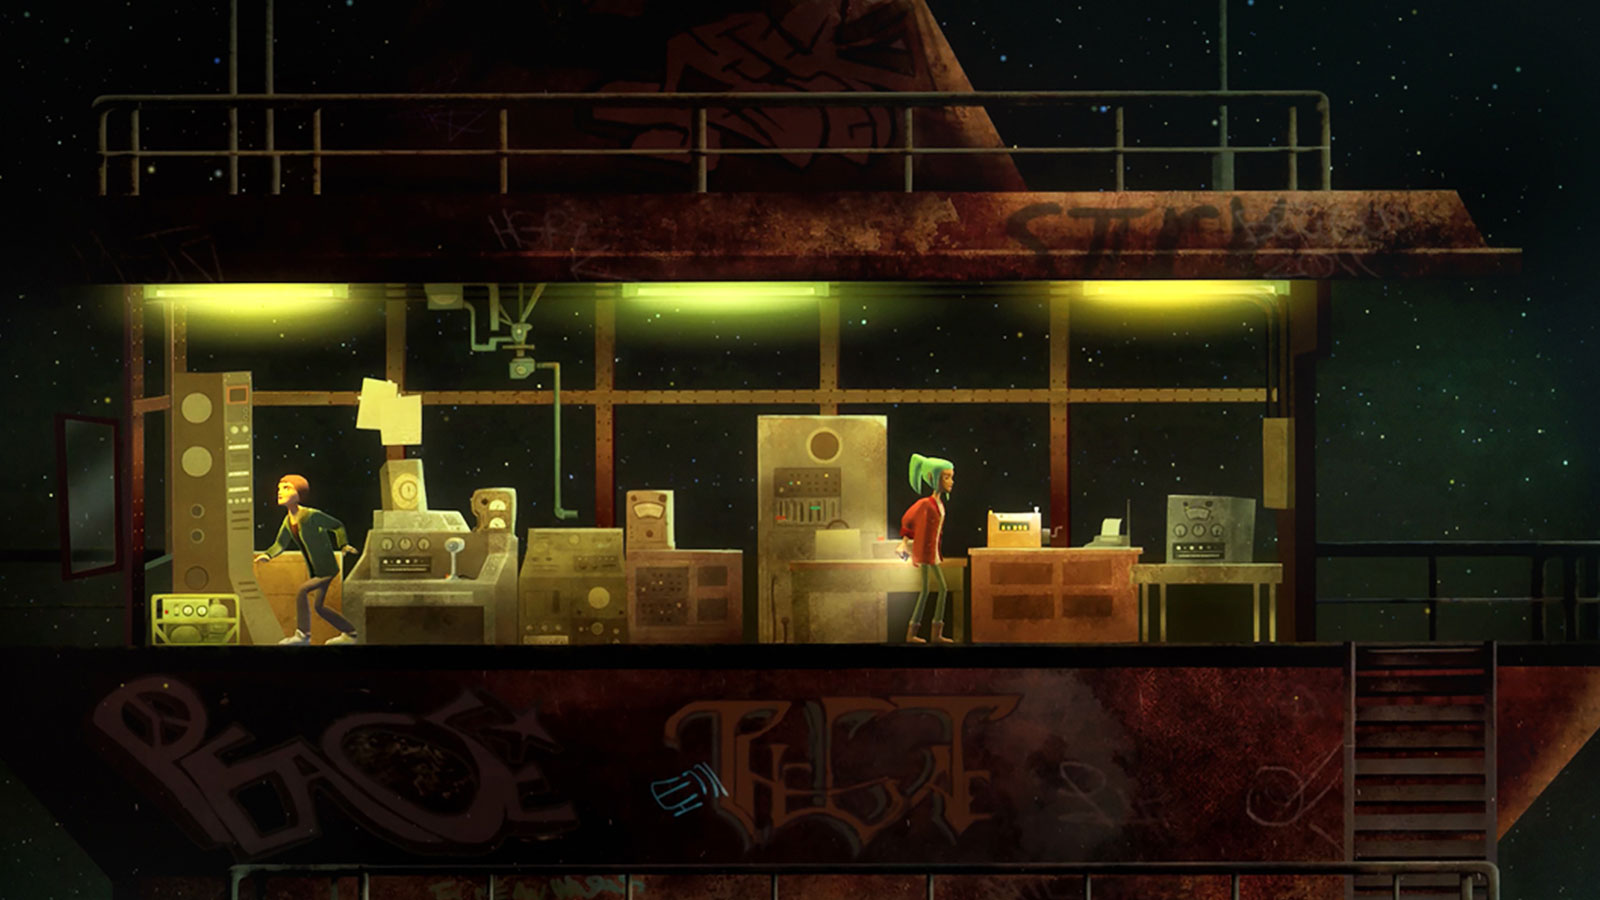 Screenshot of a game with two characters standing in a dimly lit, graffiti-covered control tower against a starry night sky.